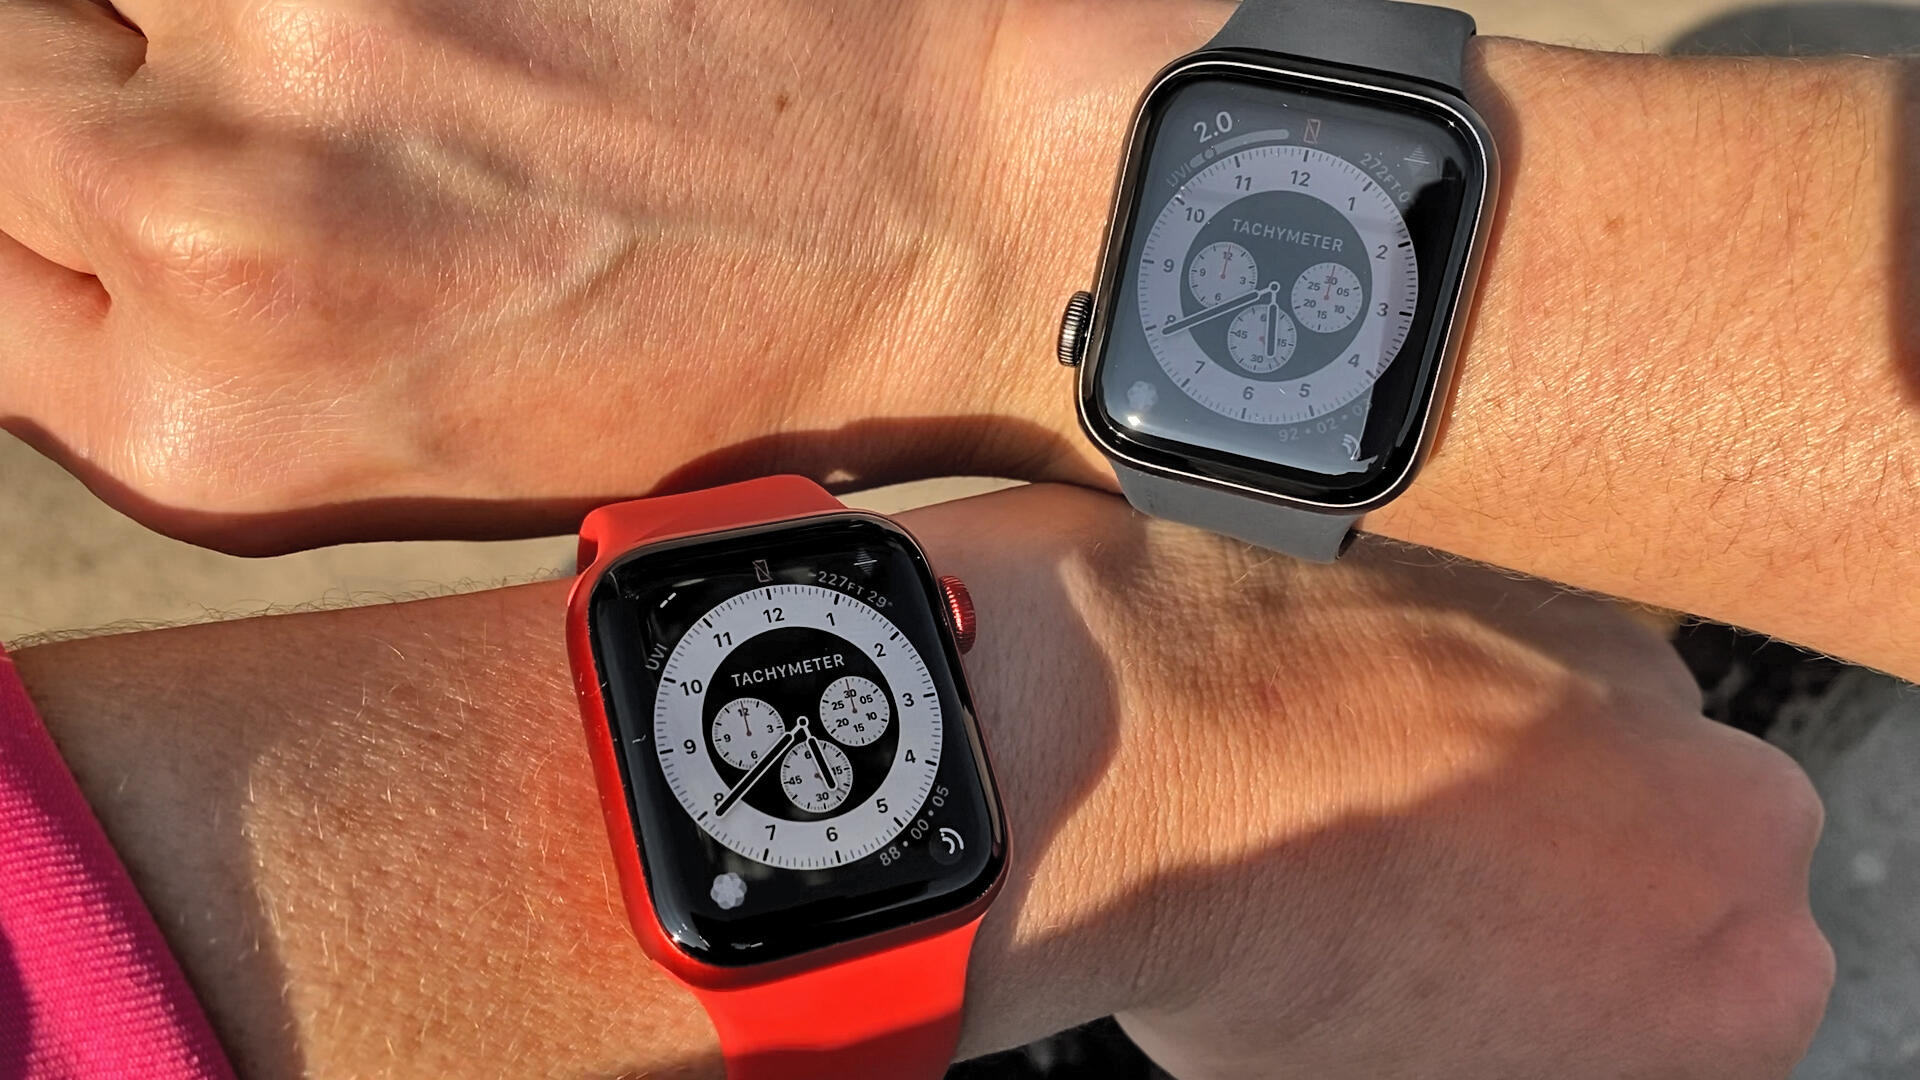 Video: Apple Watch SE and Apple Watch Series 6 comparison